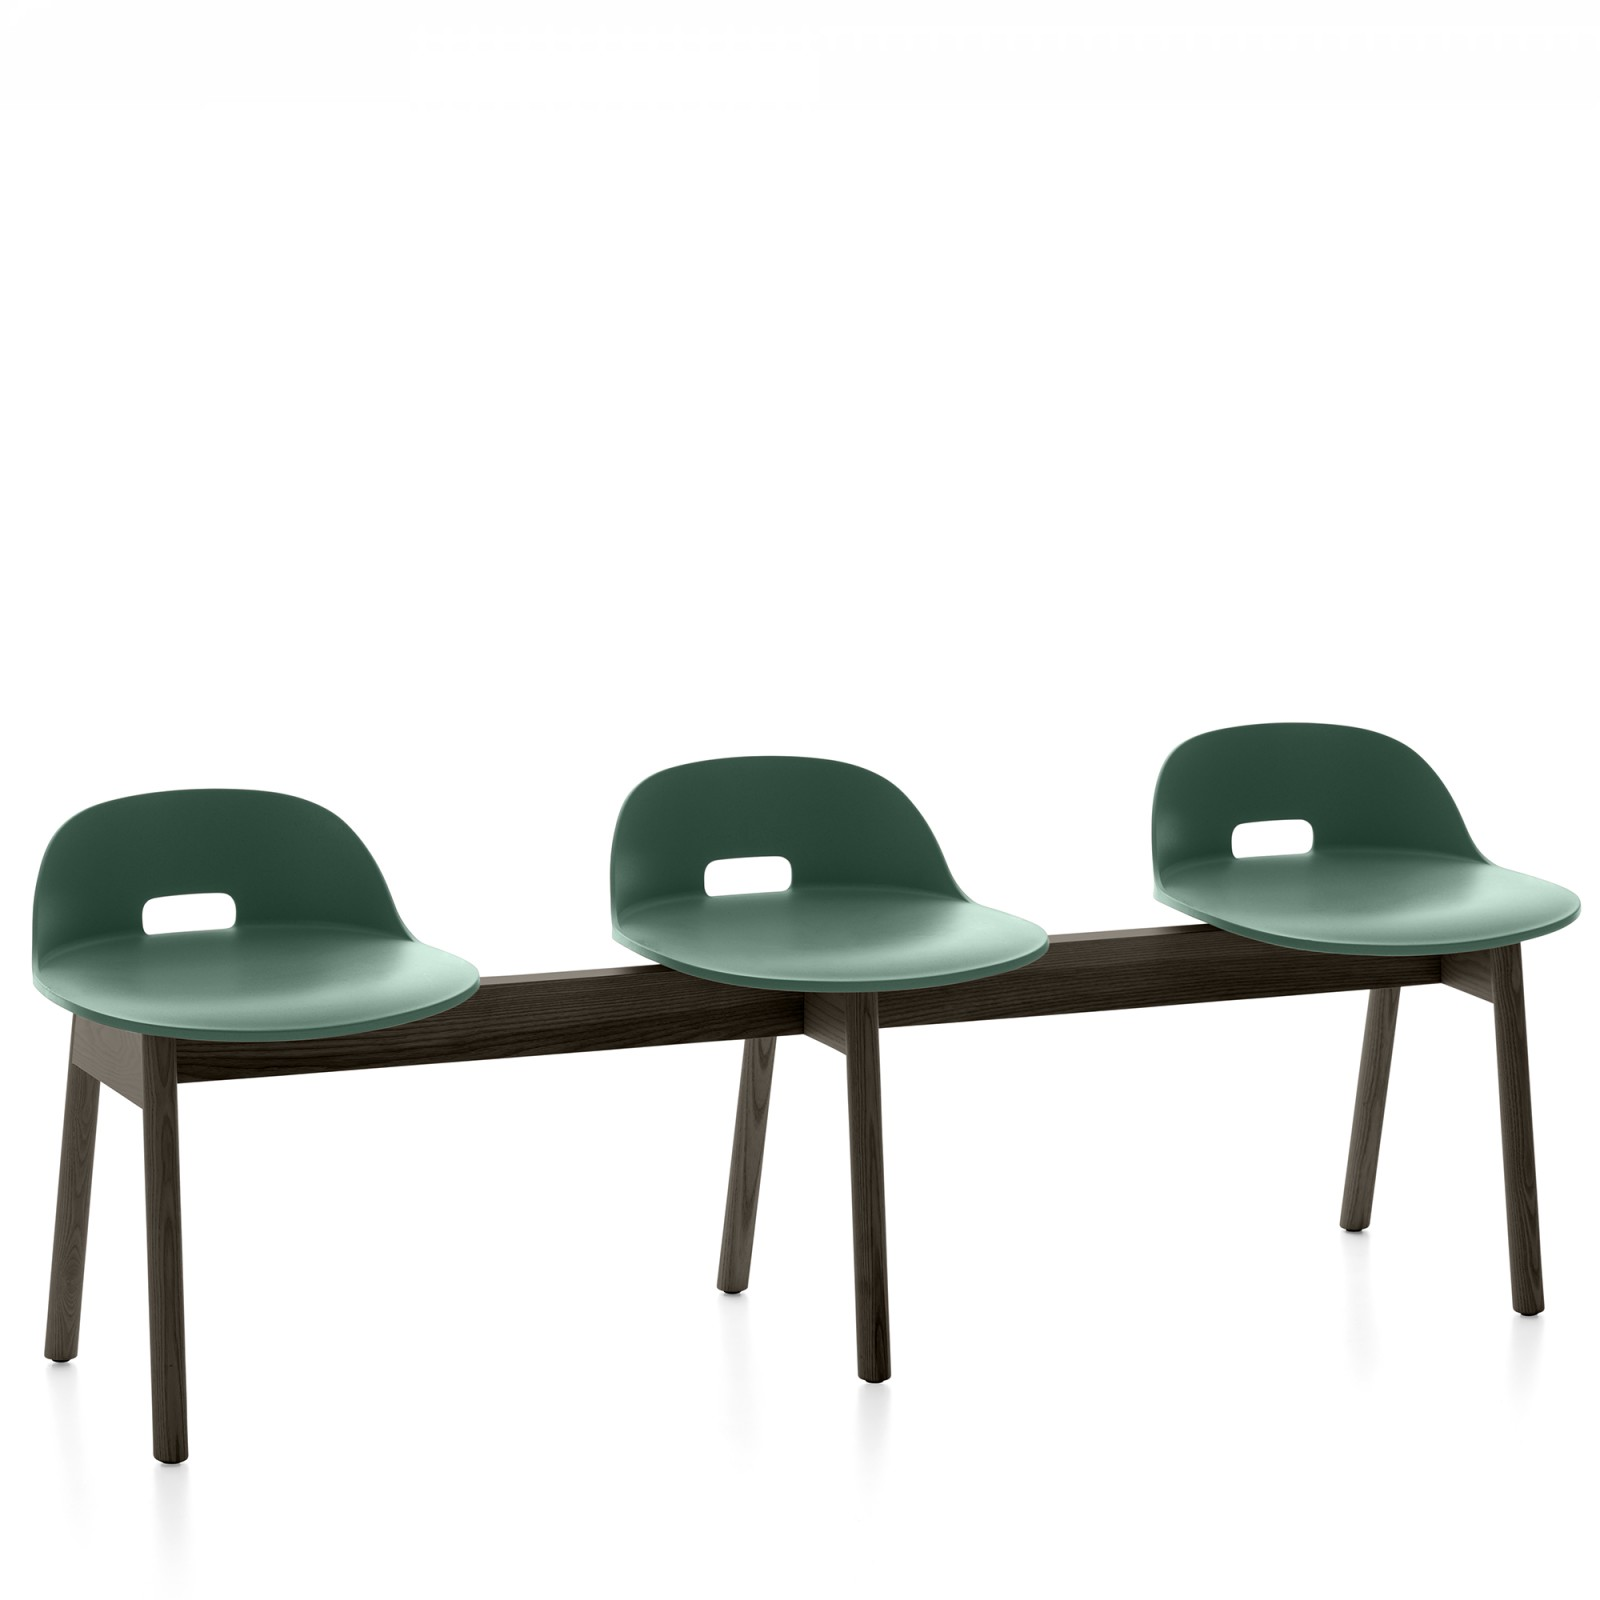 Alfi 3 Seater Bench, Low Back Green, Dark Stained Ash Frame